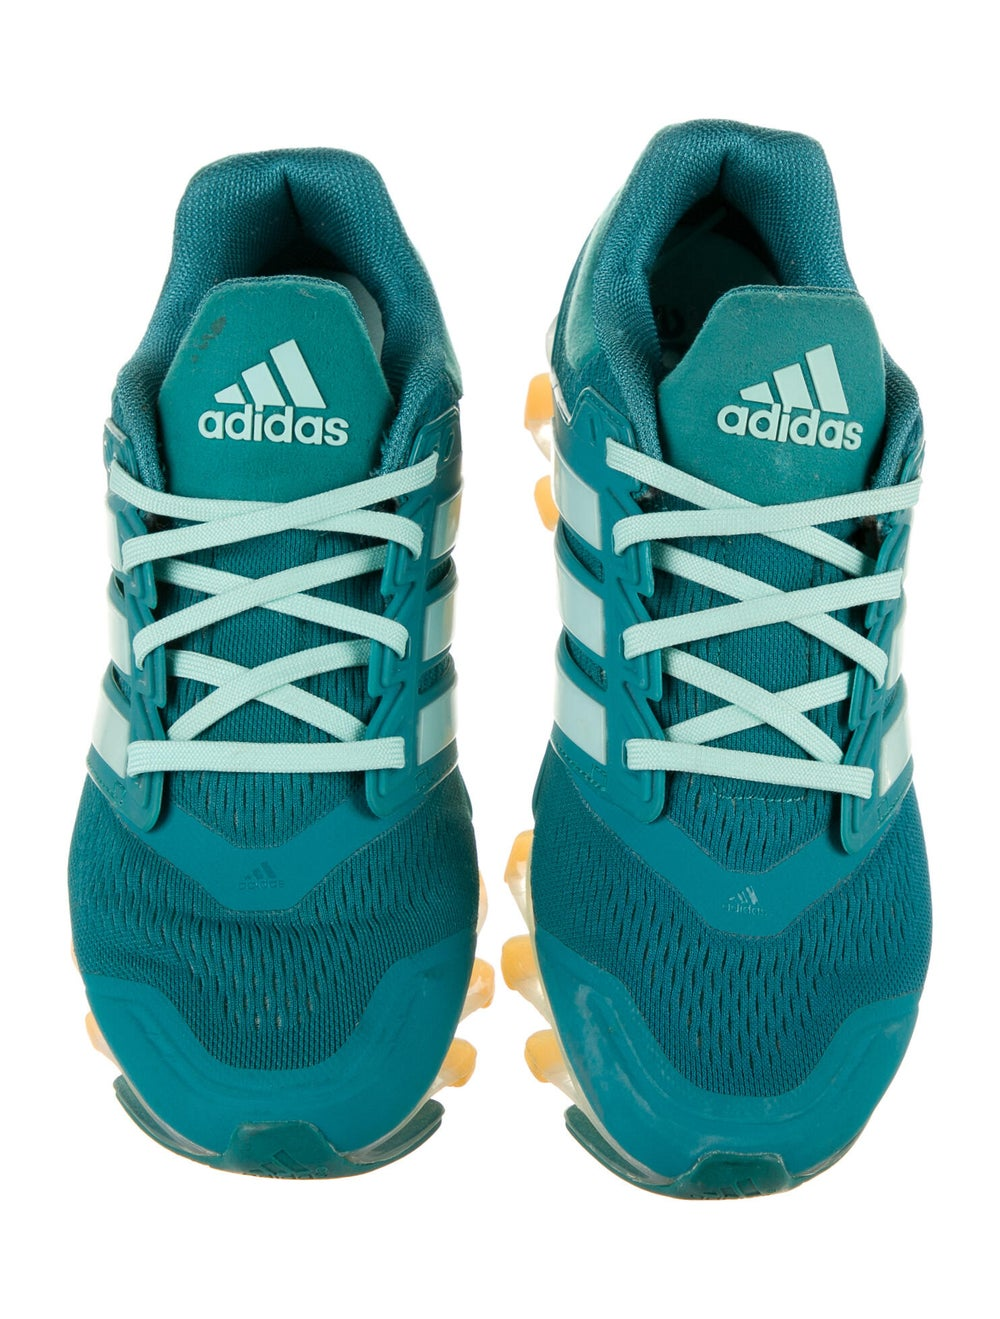 Adidas Springblade Drive Athletic Sneakers Green - image 3